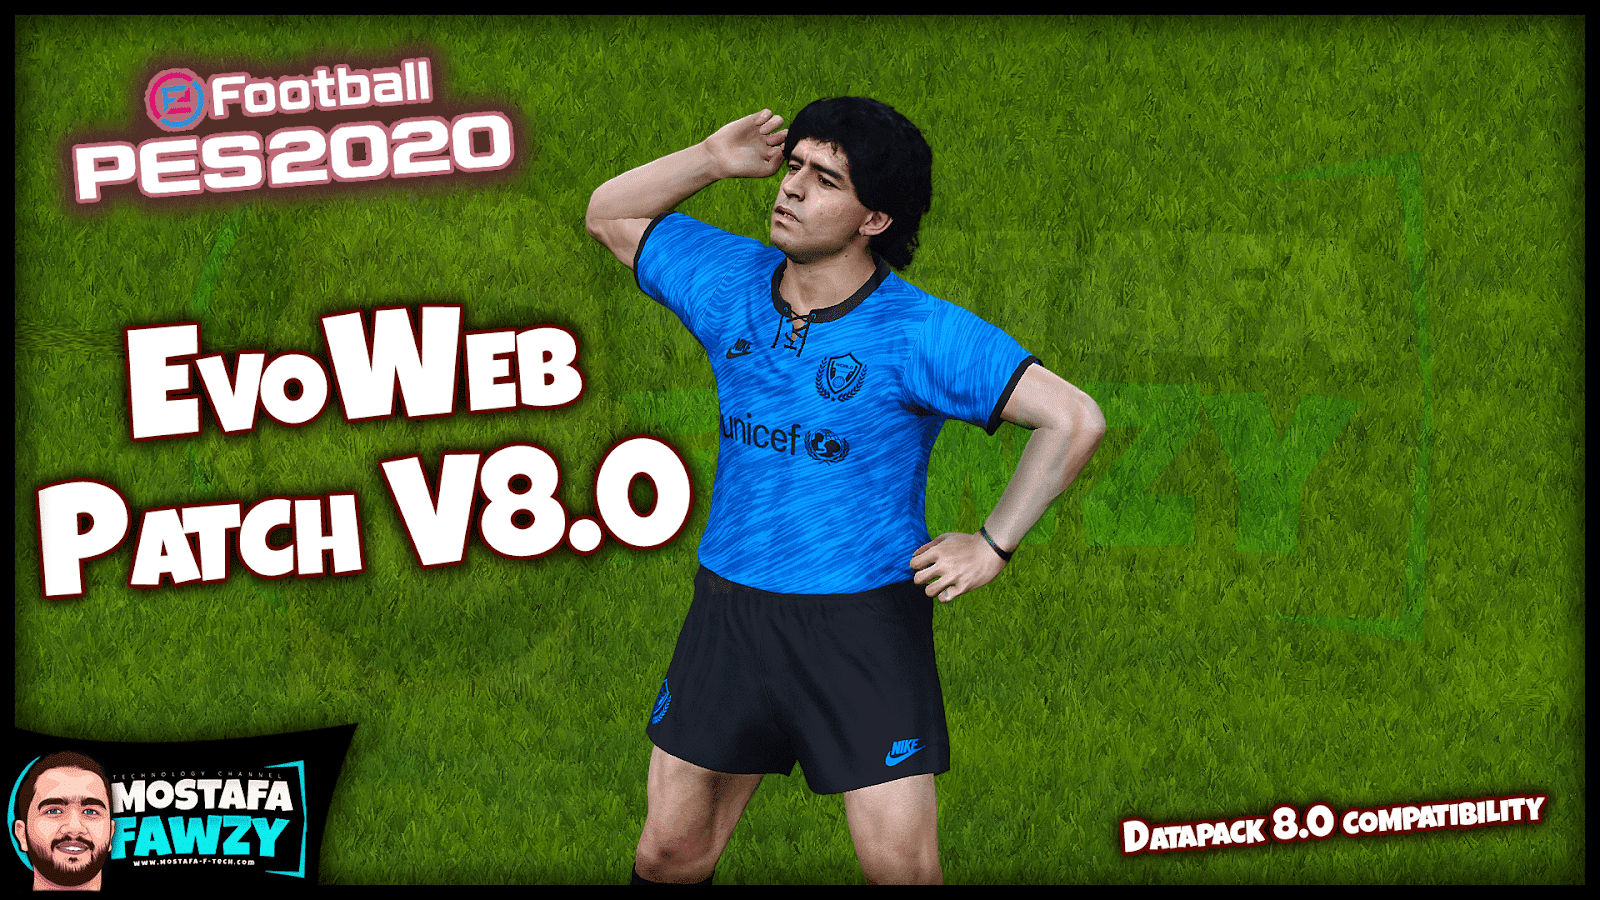 pes2020 evoweb patch efootball pes 2020 konami pes 2020 pes 2020 konami pes 2020 torrent football pes 2020